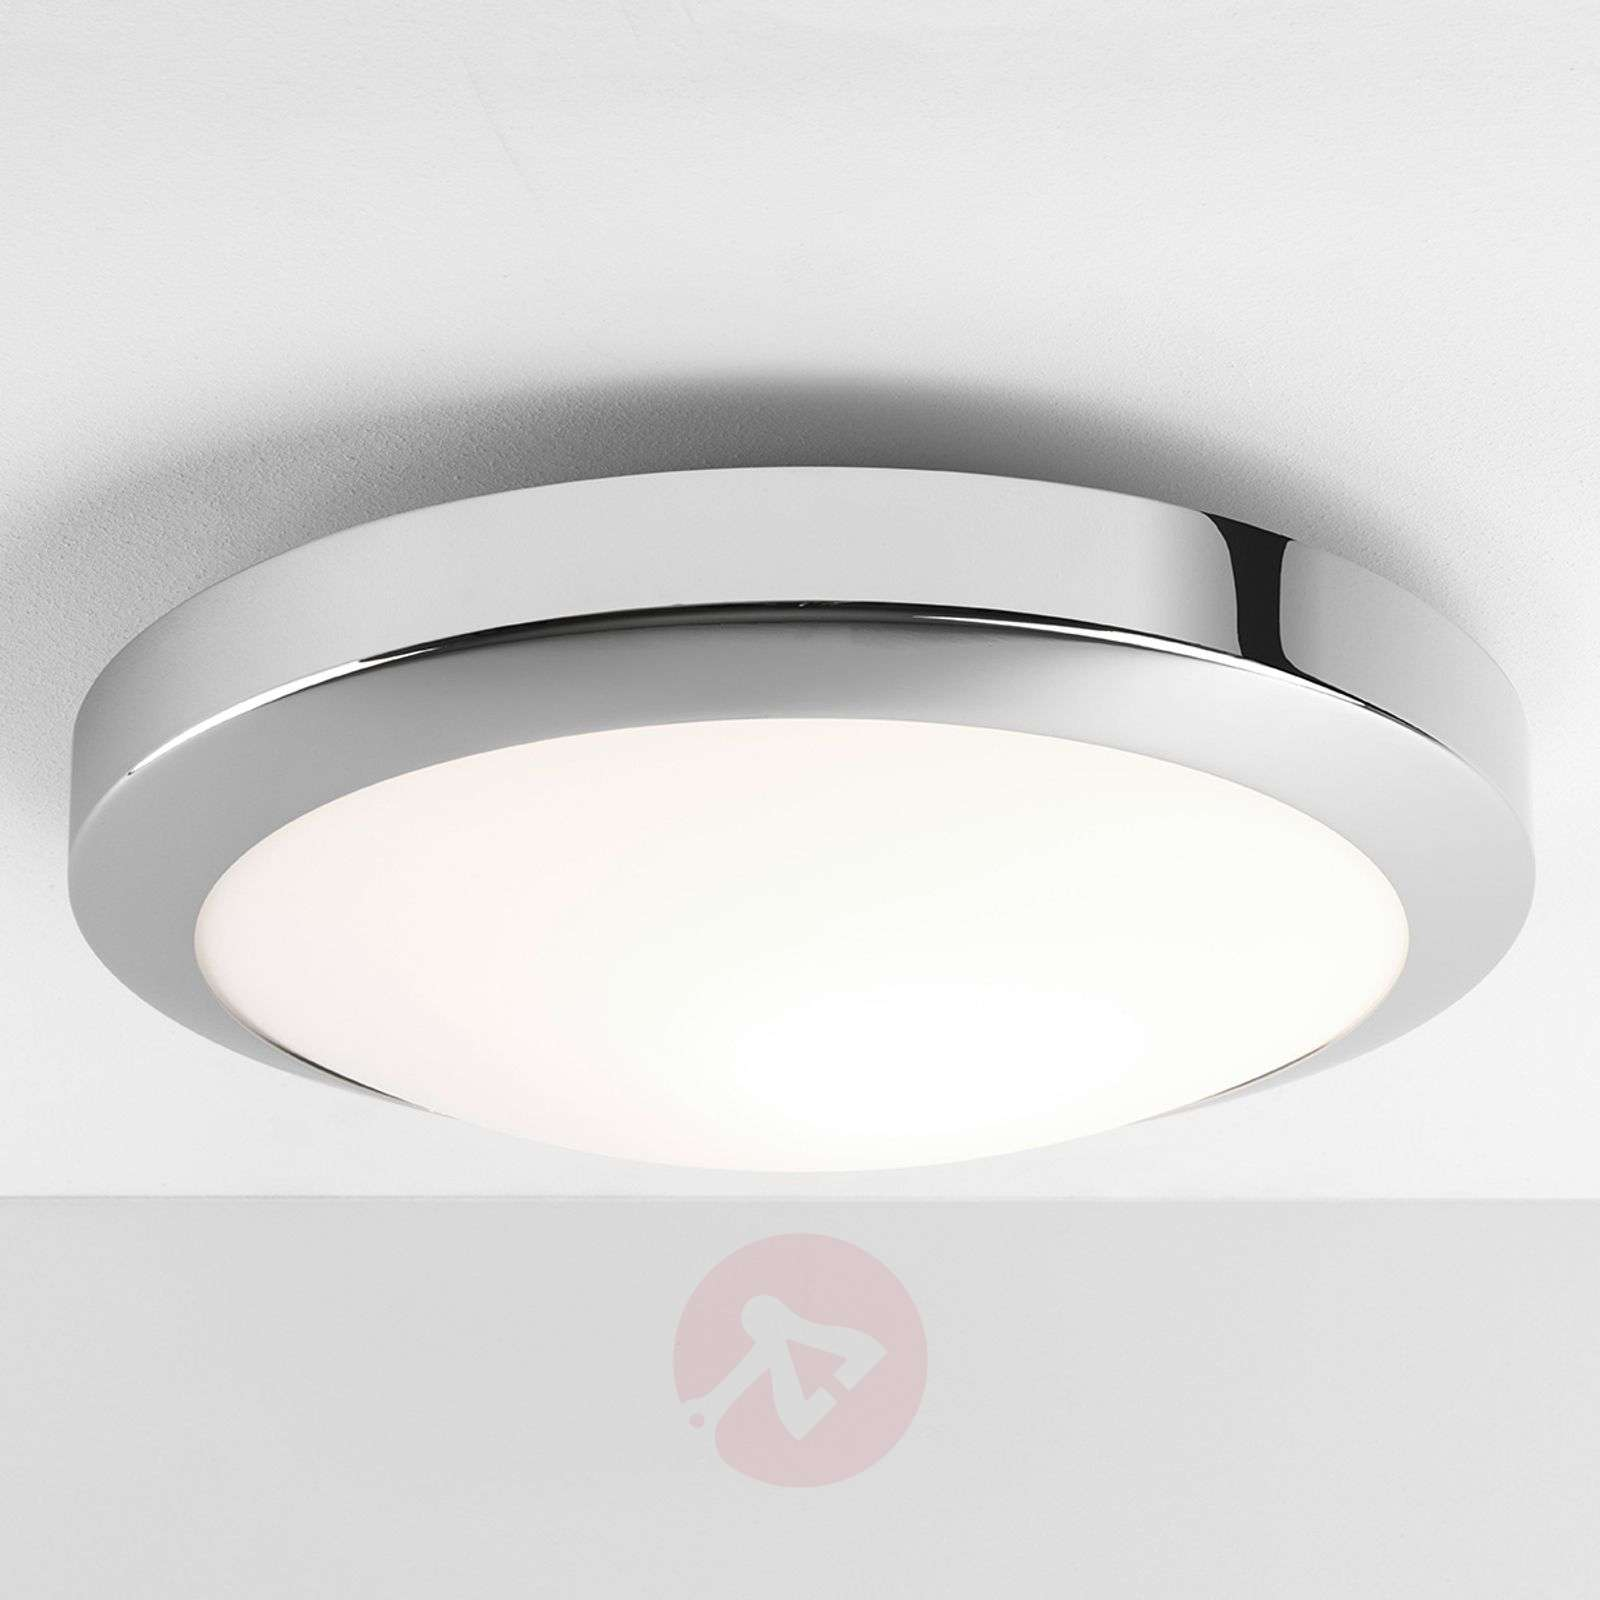 Dakota 300 Ceiling Light Classic-1020089X-03